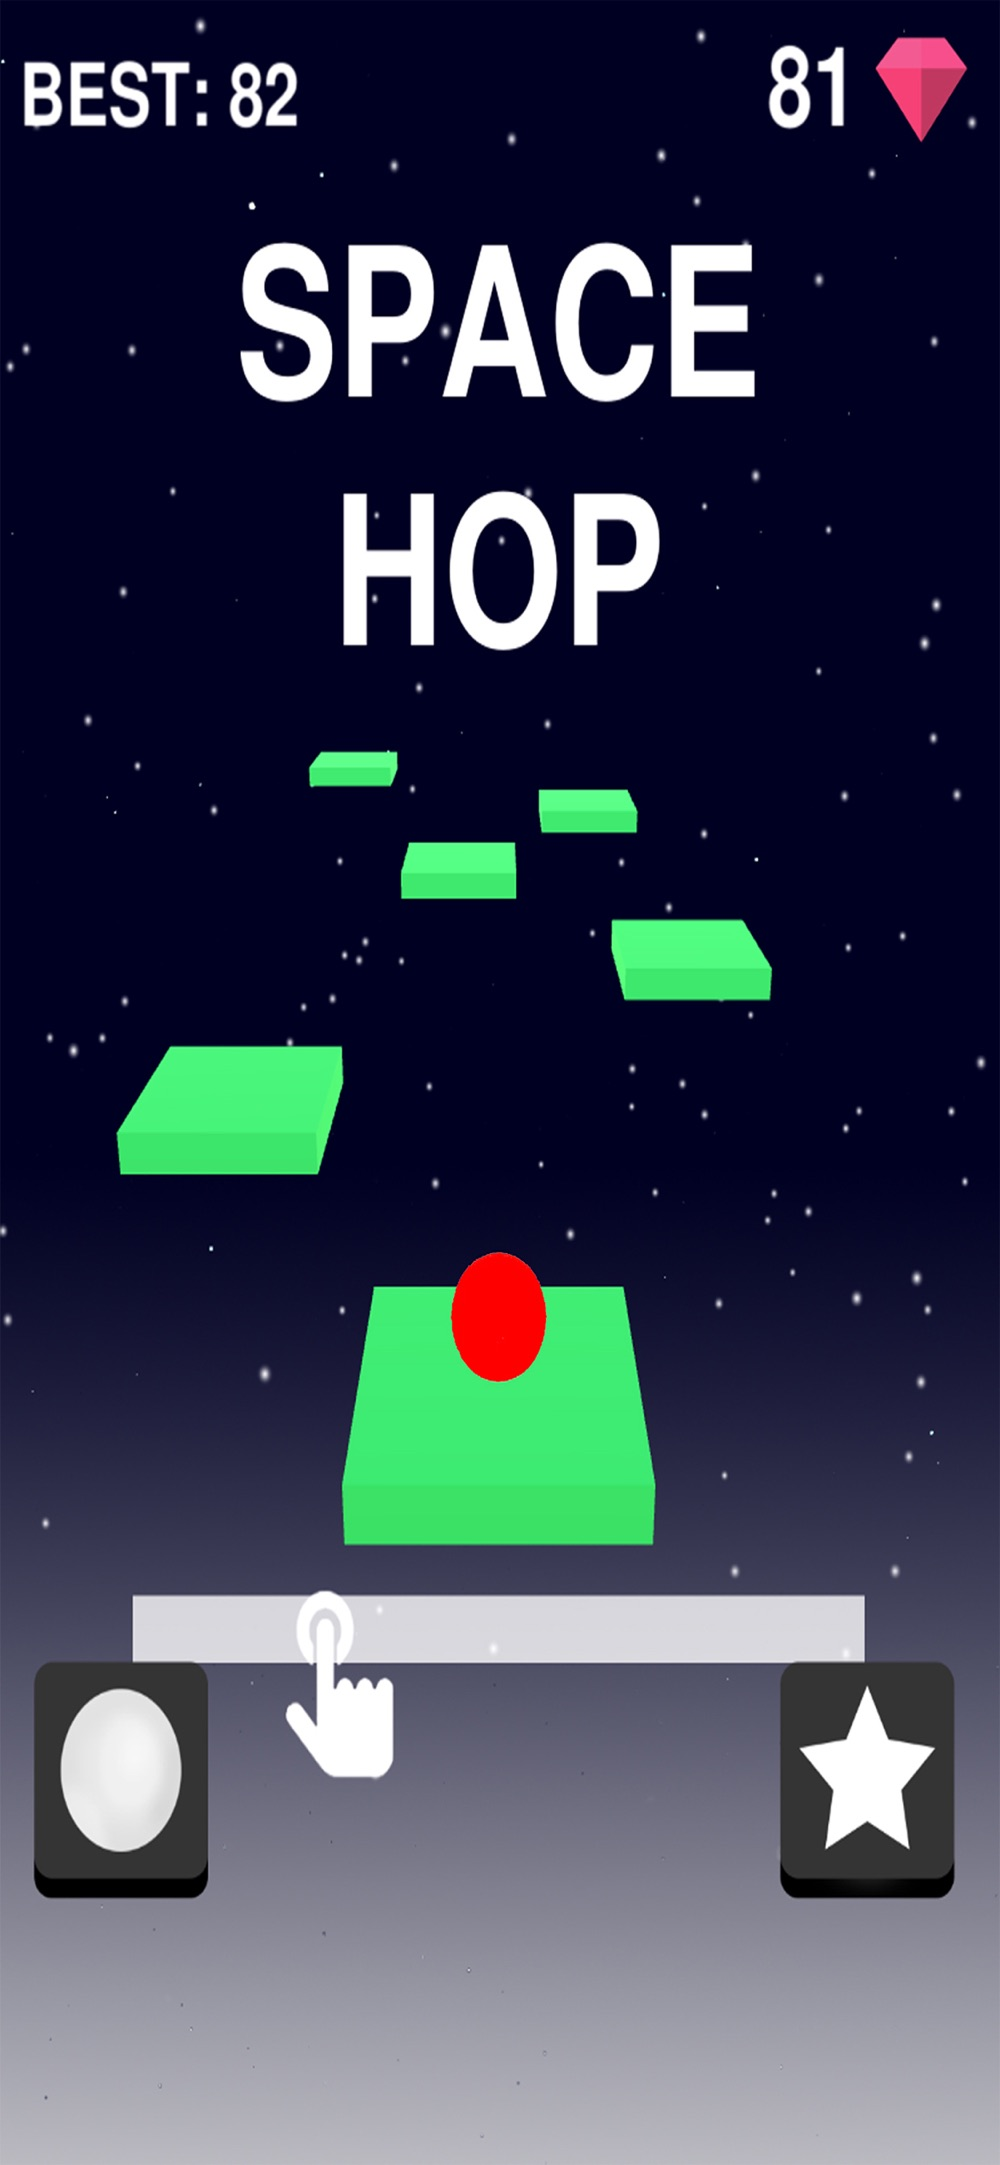 Space Hop Cheat Codes